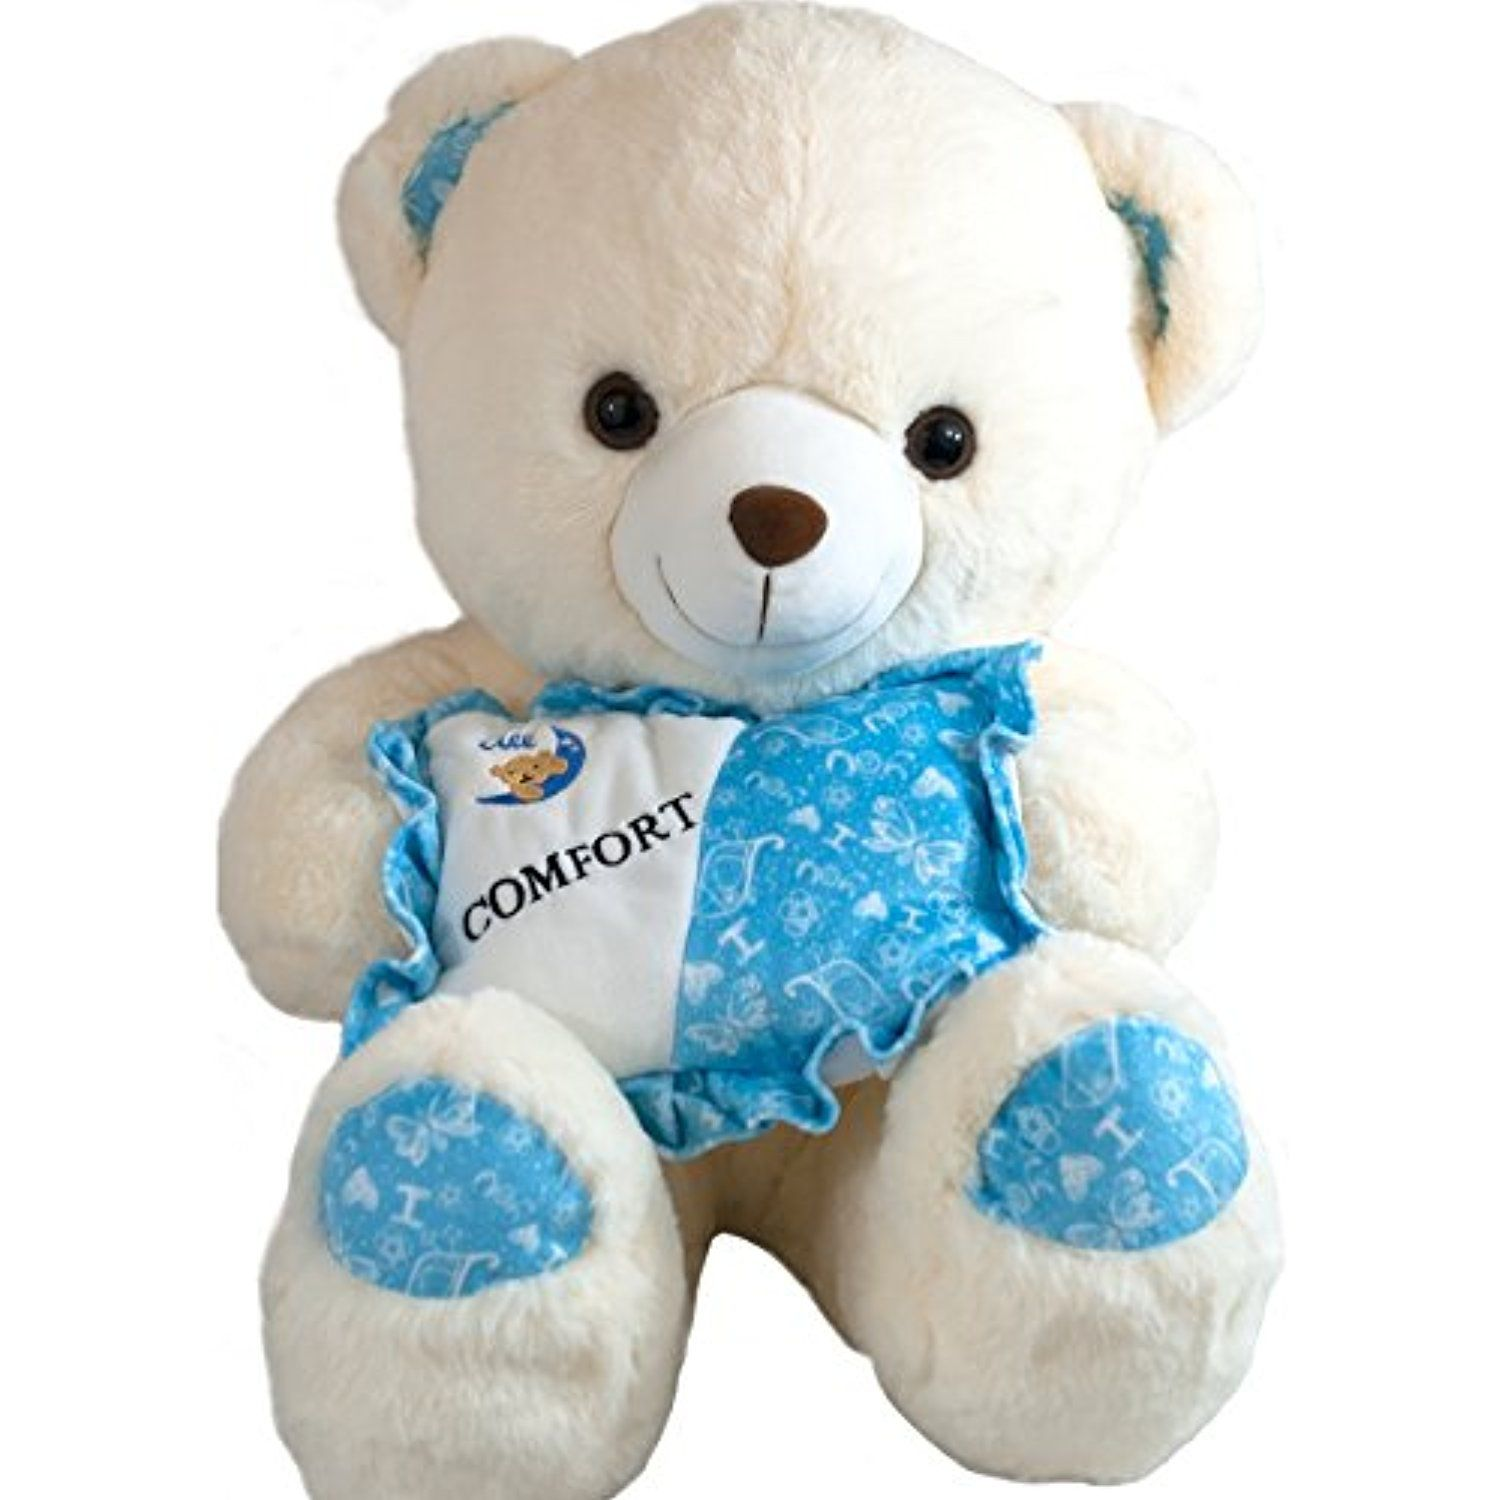 Teddy Bear 21 Inches Big Super Soft Cuddle Stuffed Animals Plush Toy White By All Comfort Check Out Teddy Bear Stuffed Animal Animal Plush Toys Teddy Bear [ 1500 x 1500 Pixel ]